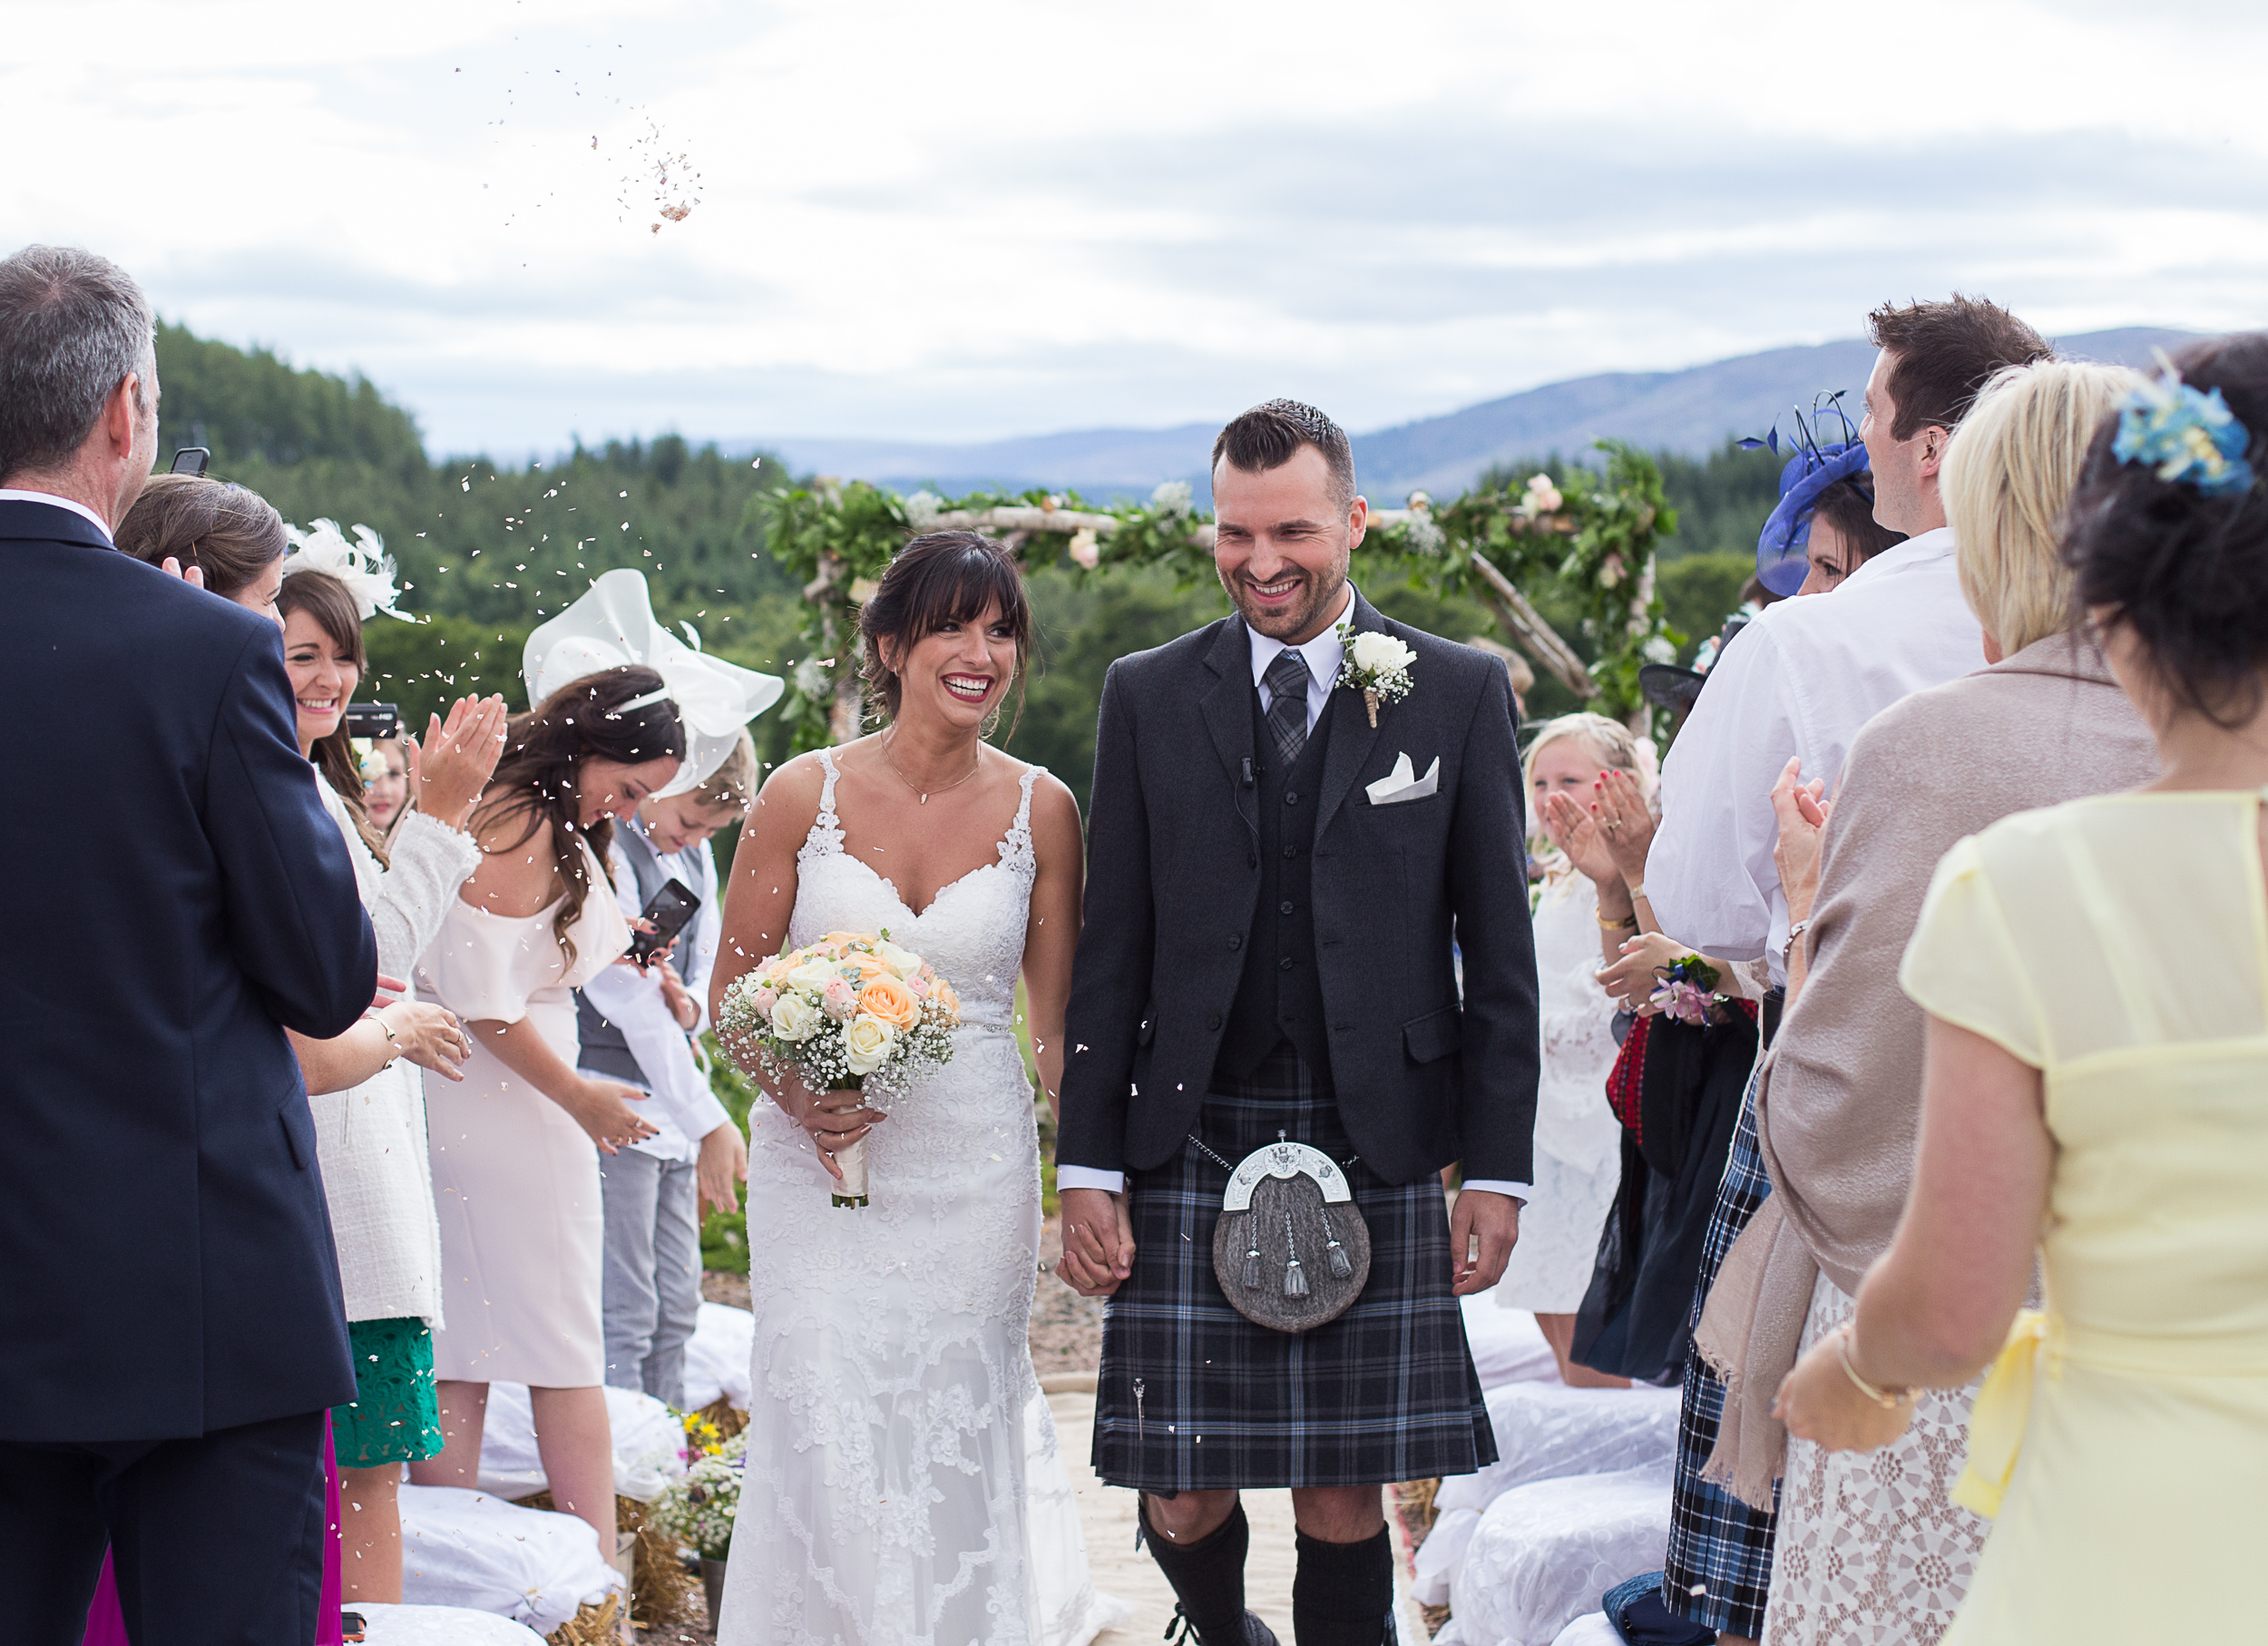 outdoor wedding Aberdeen, wedding photographer Aberdeen, wedding photographers Aberdeen